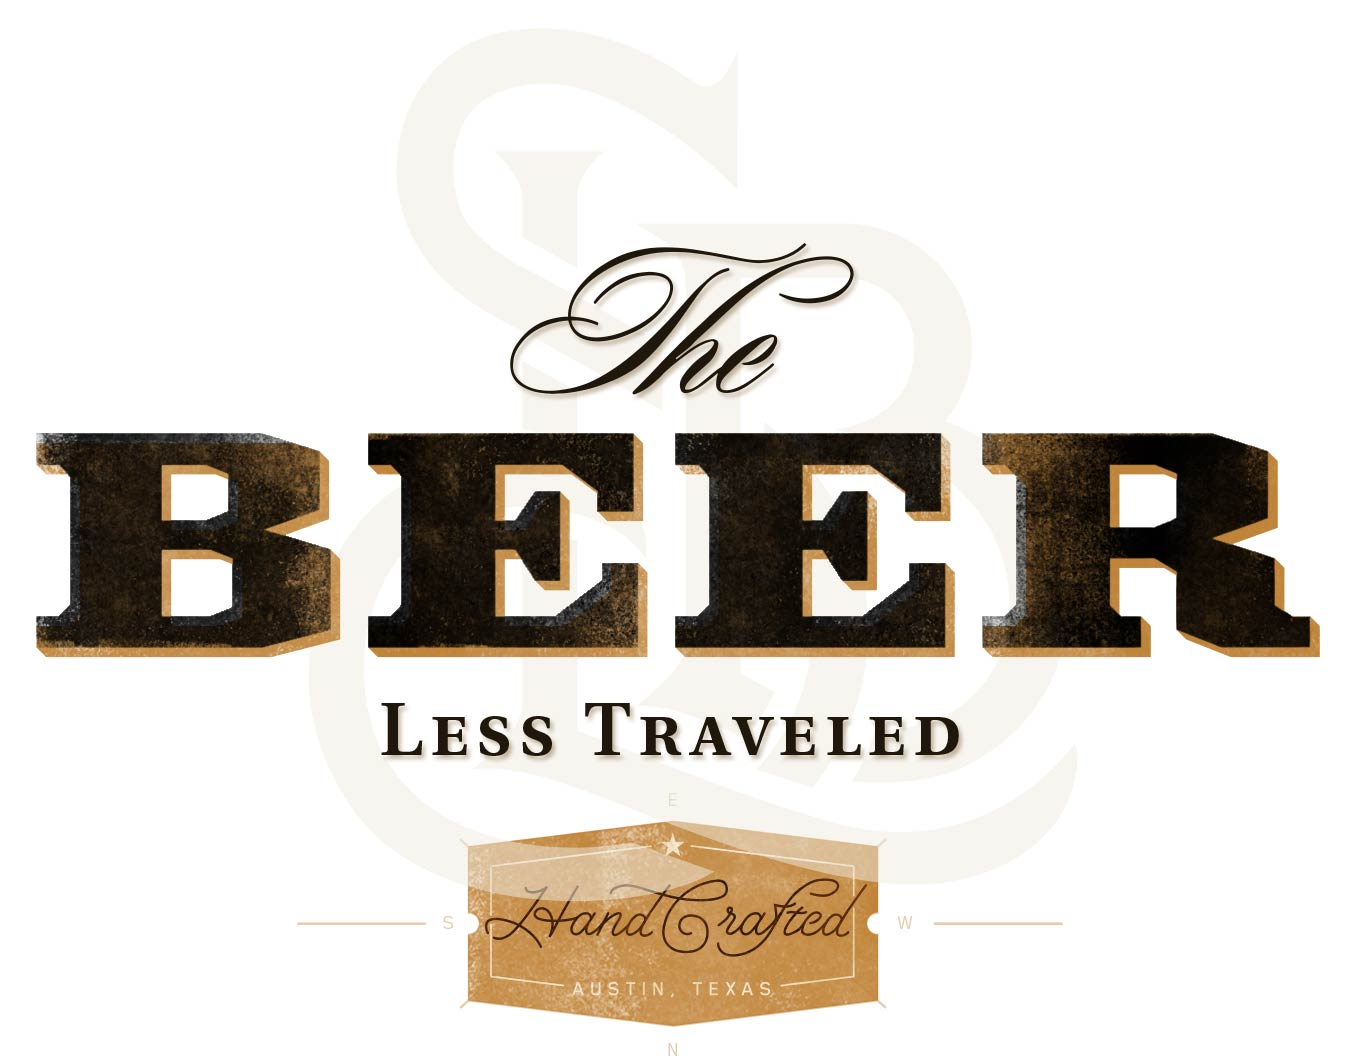 The Beer Less Traveled